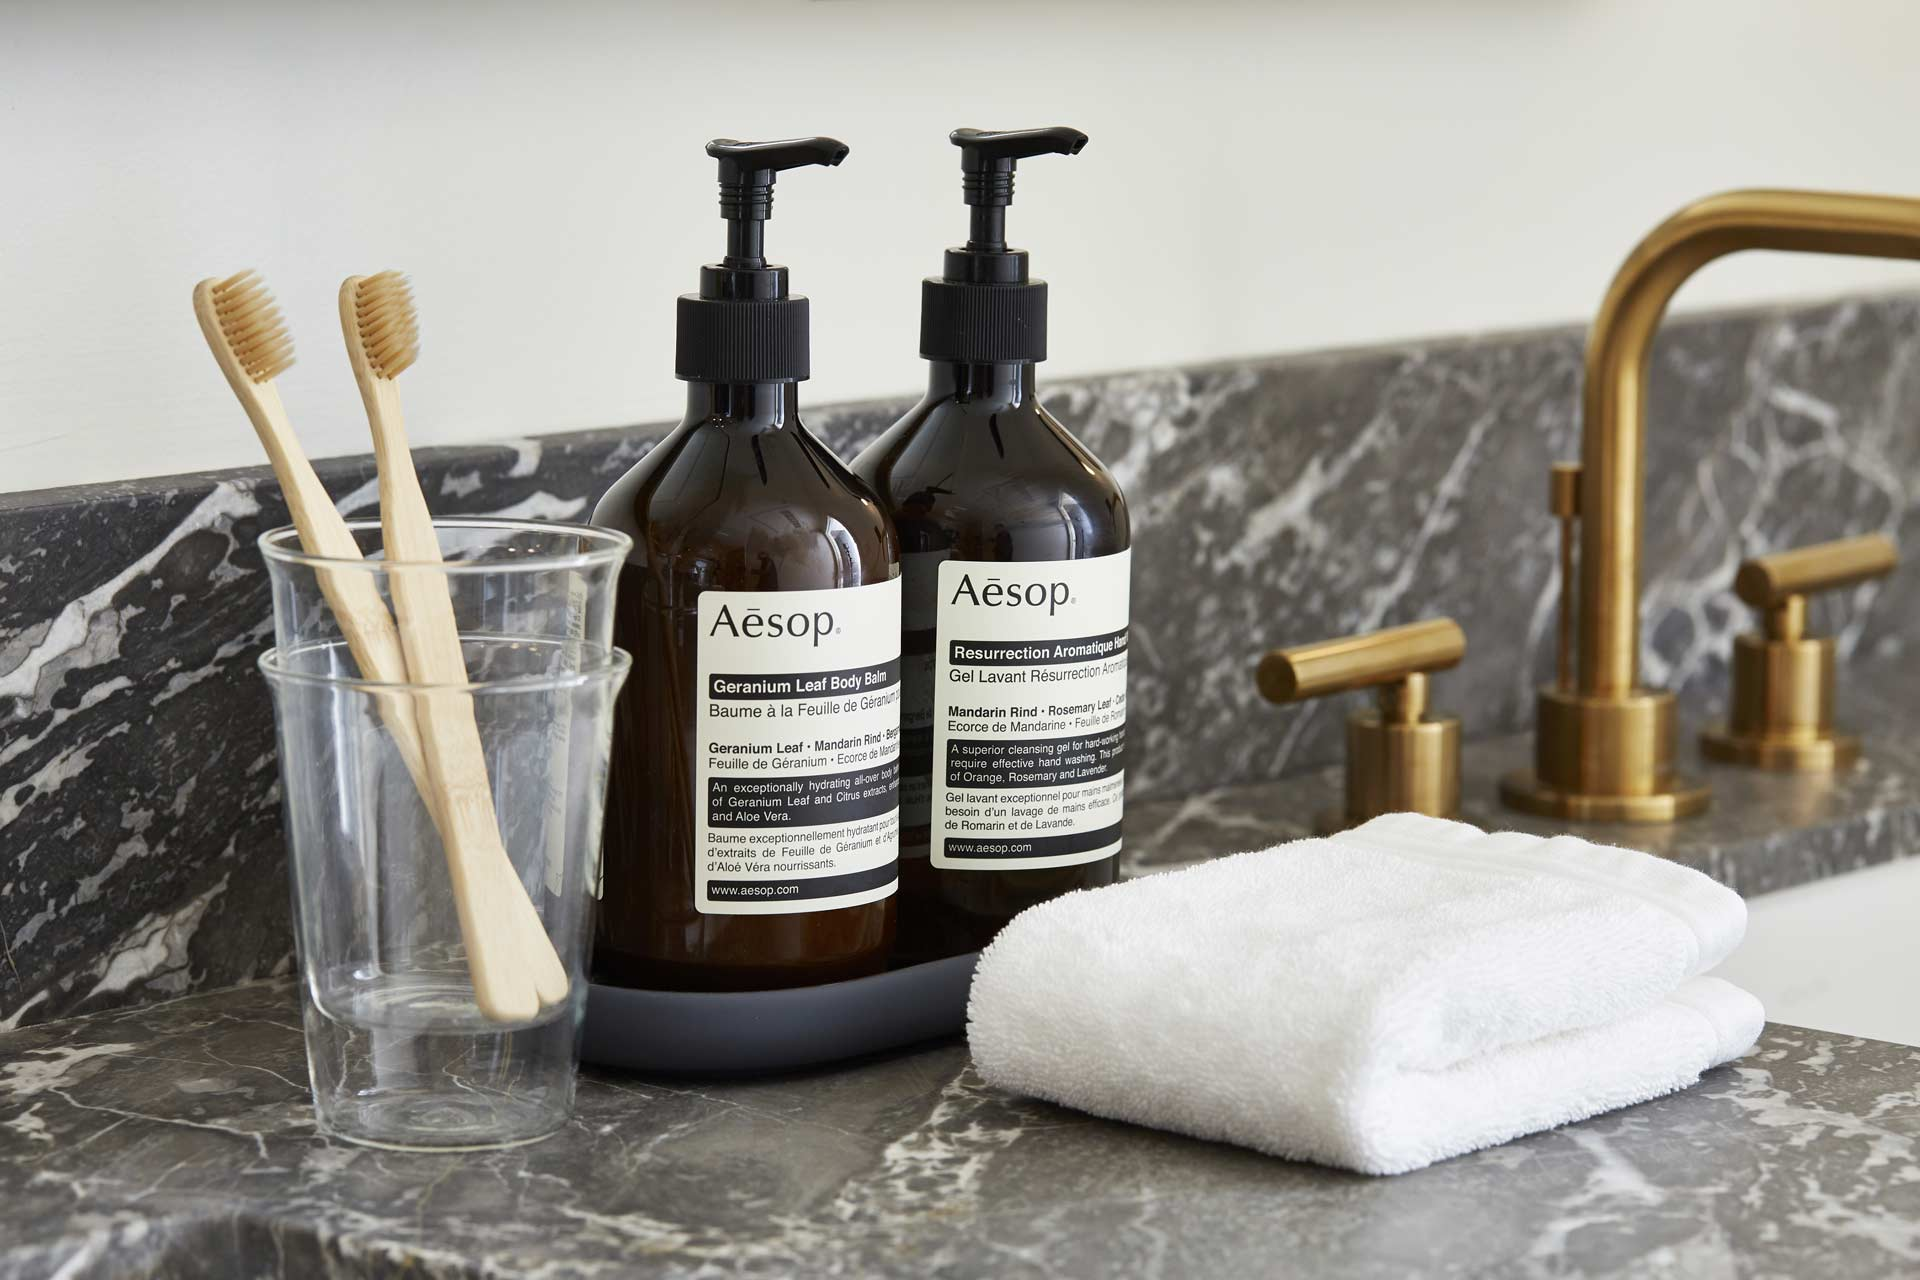 aesop bath amenities